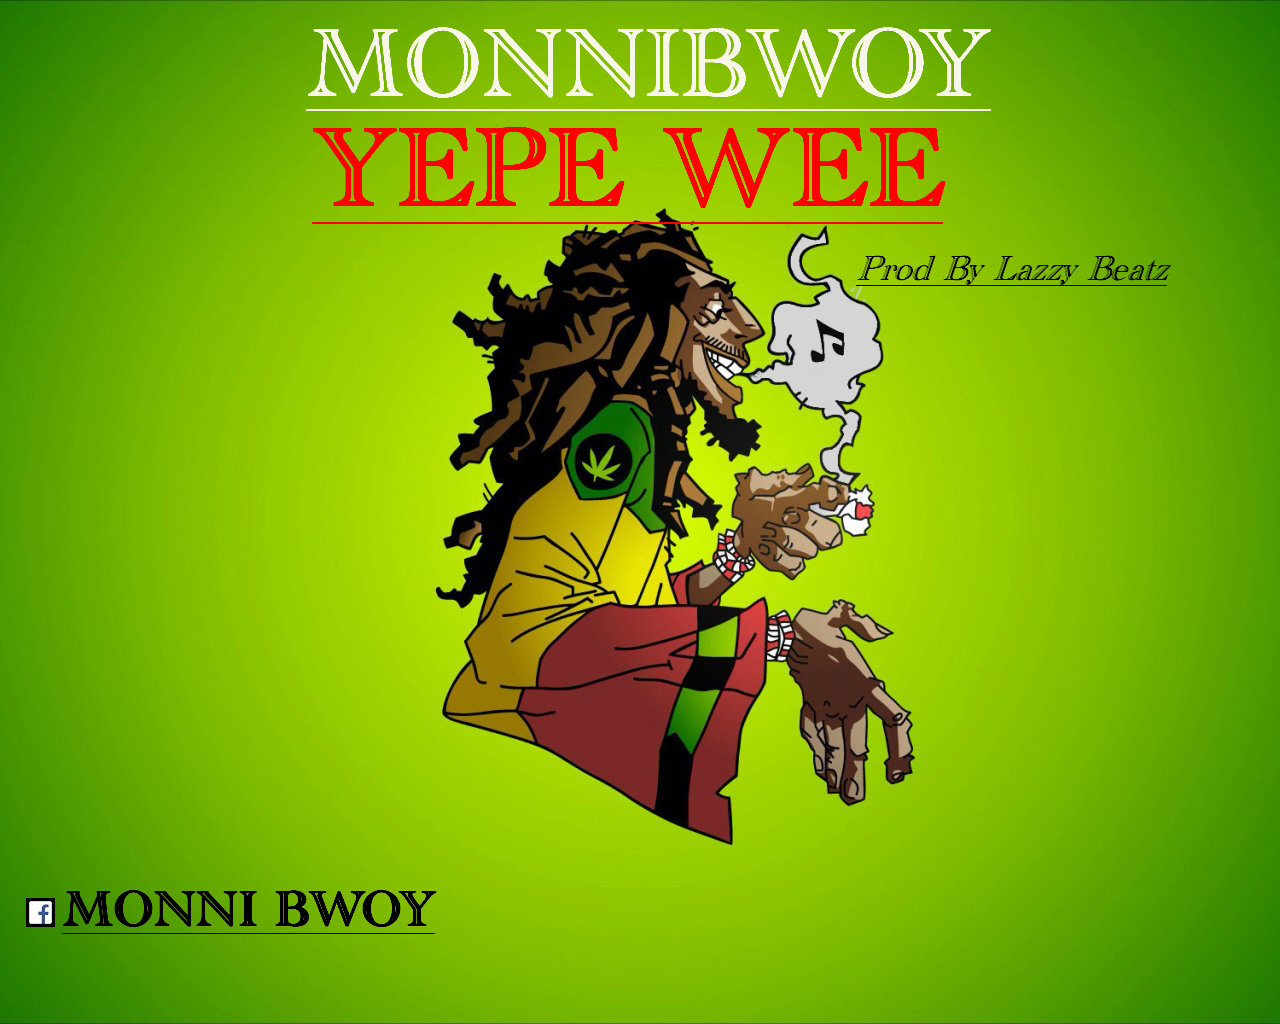 MonniBwoy - Yepe Wee (Prod. By Lazzy Beatz)